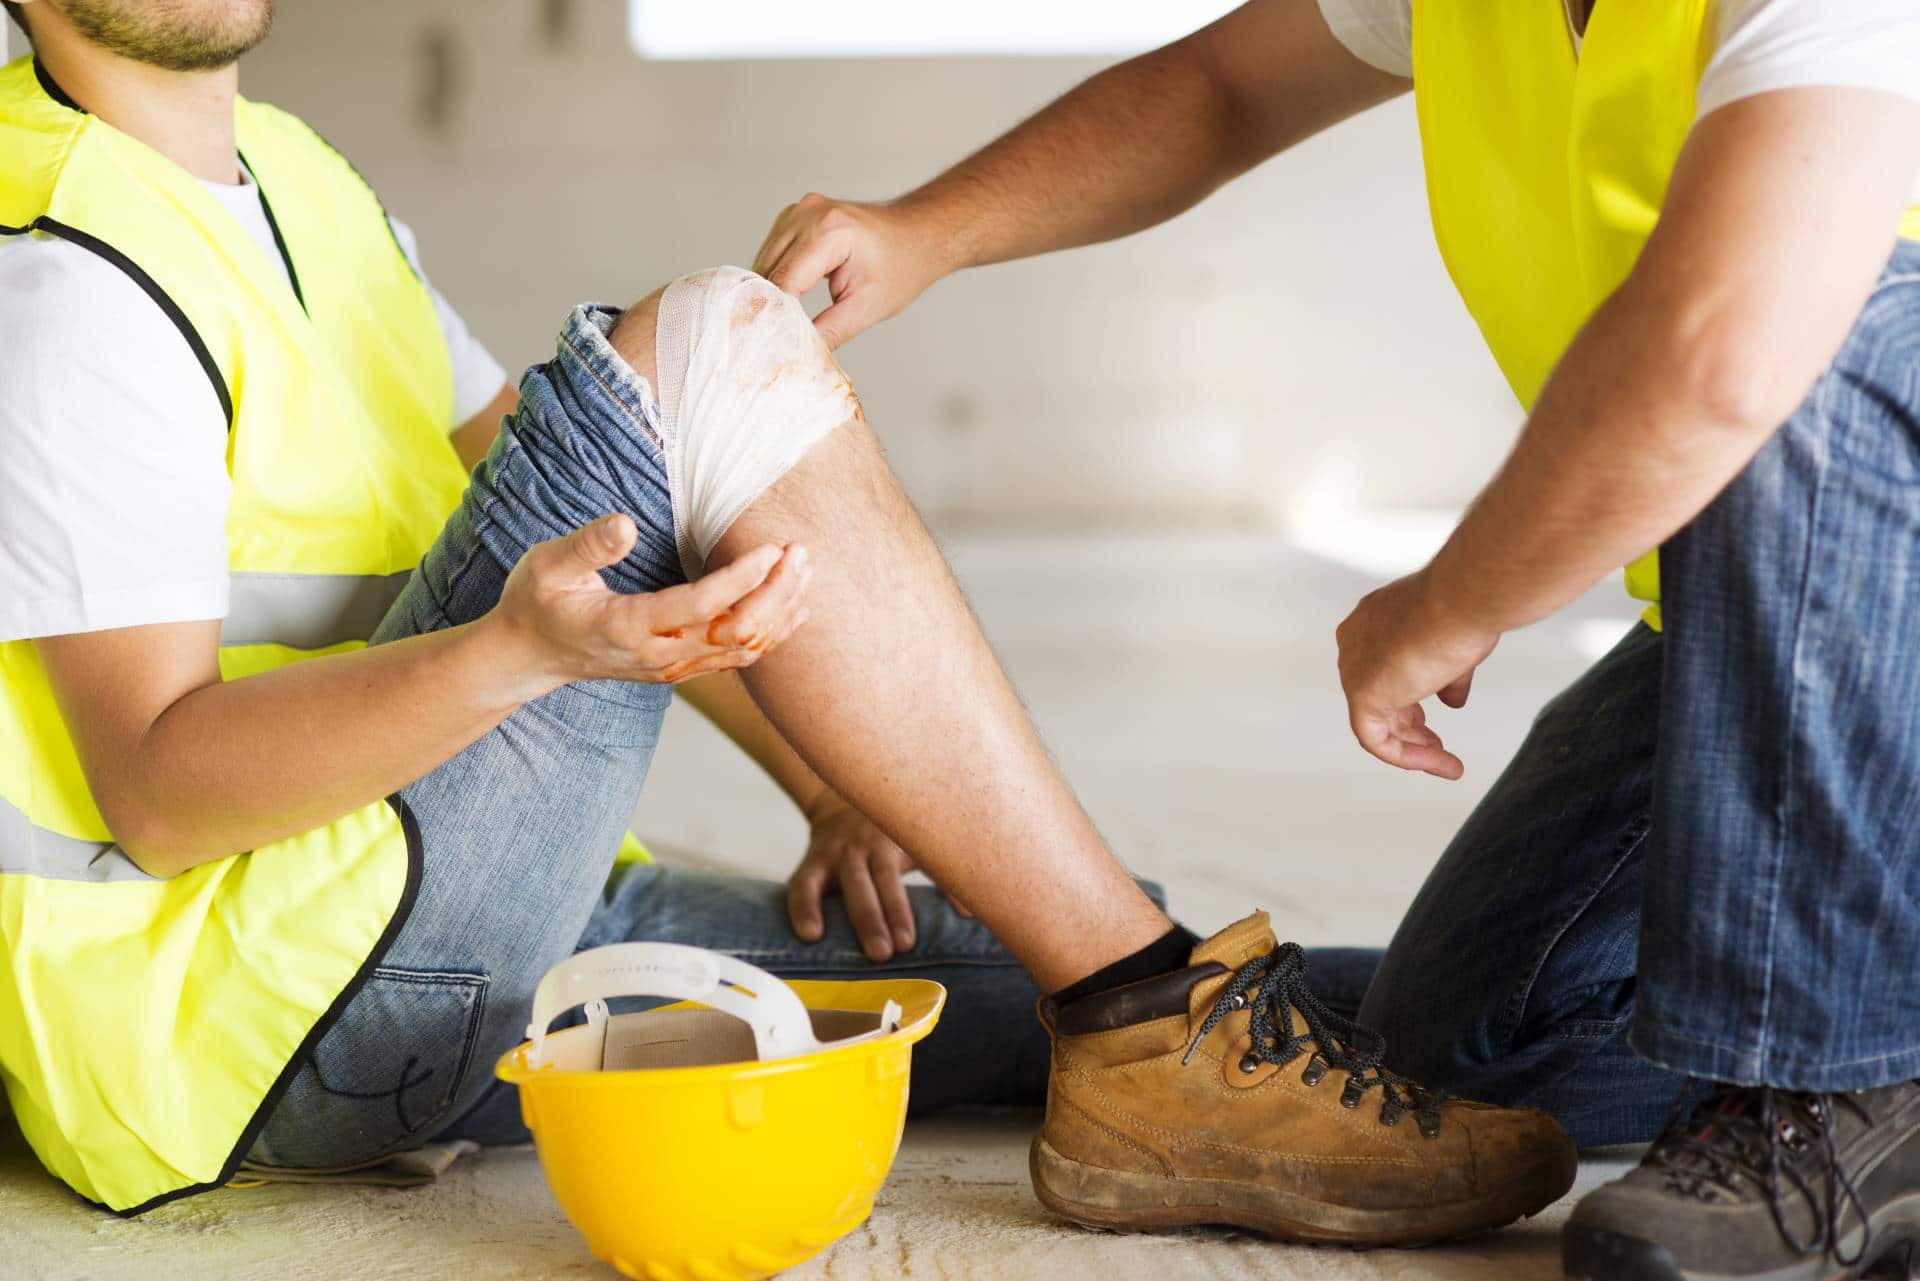 Injured on the job? Schedule a free consultation with our personal injury lawyers at the Angell Law Firm in Lindridge-Martin Manor